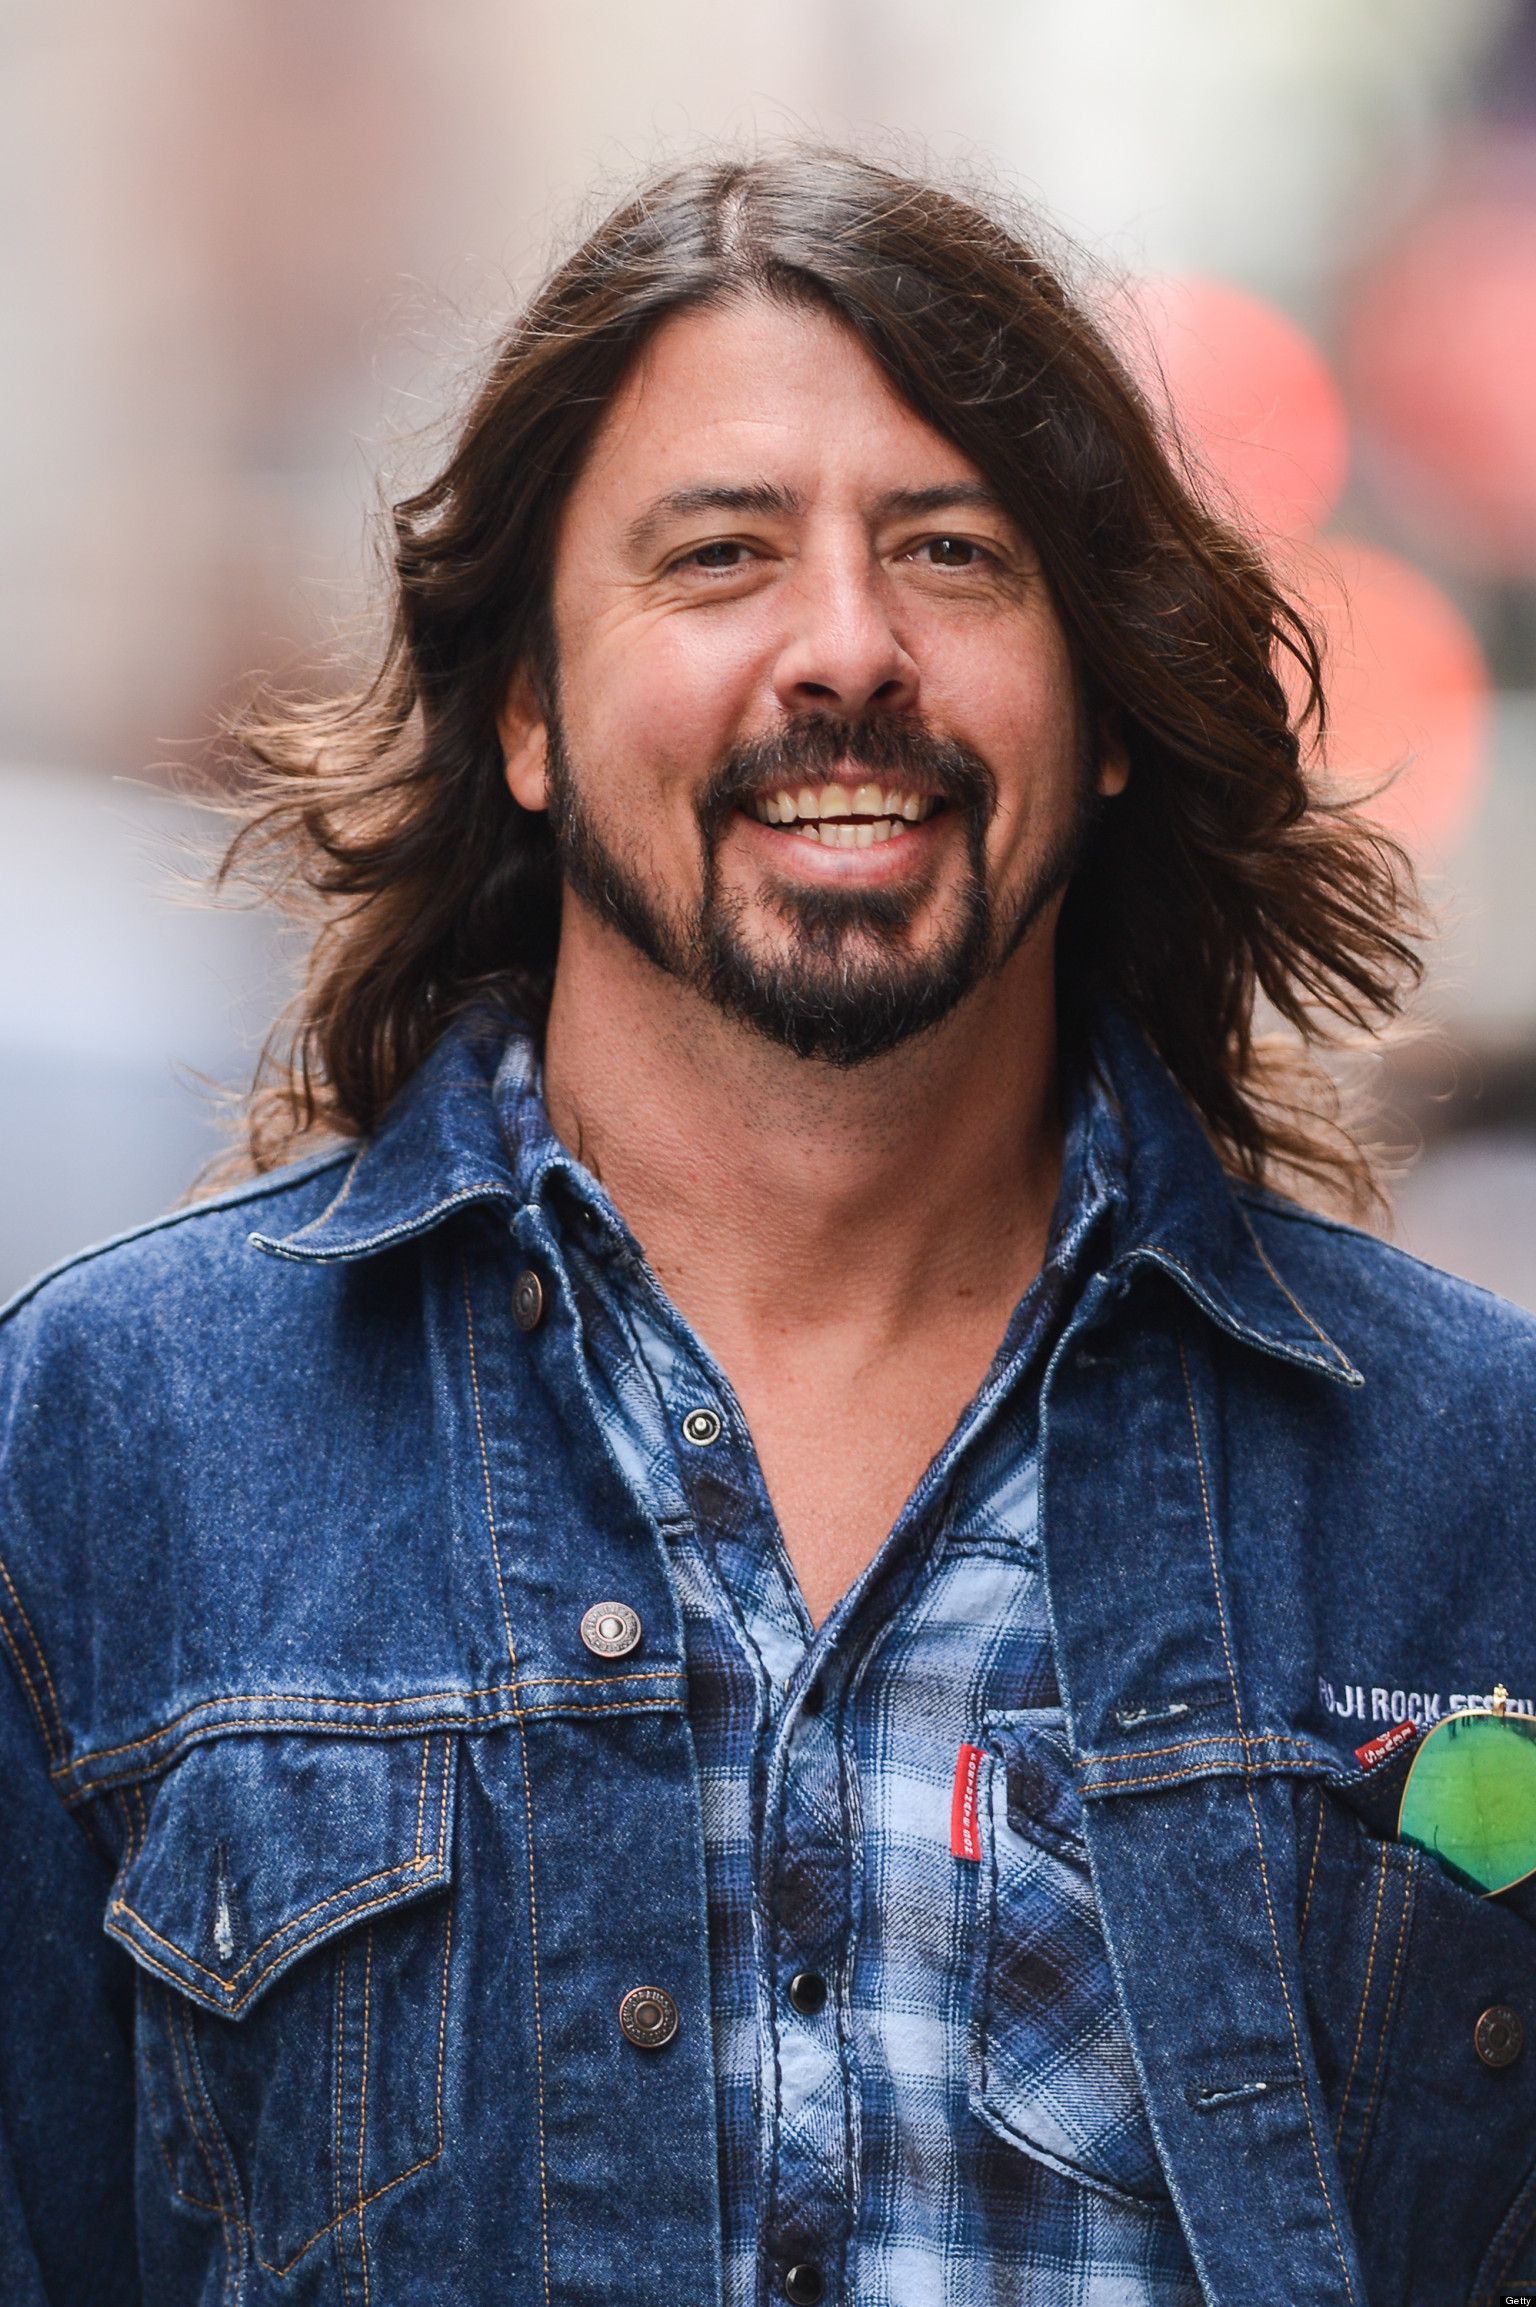 dave grohl fan invites musician to his wedding in